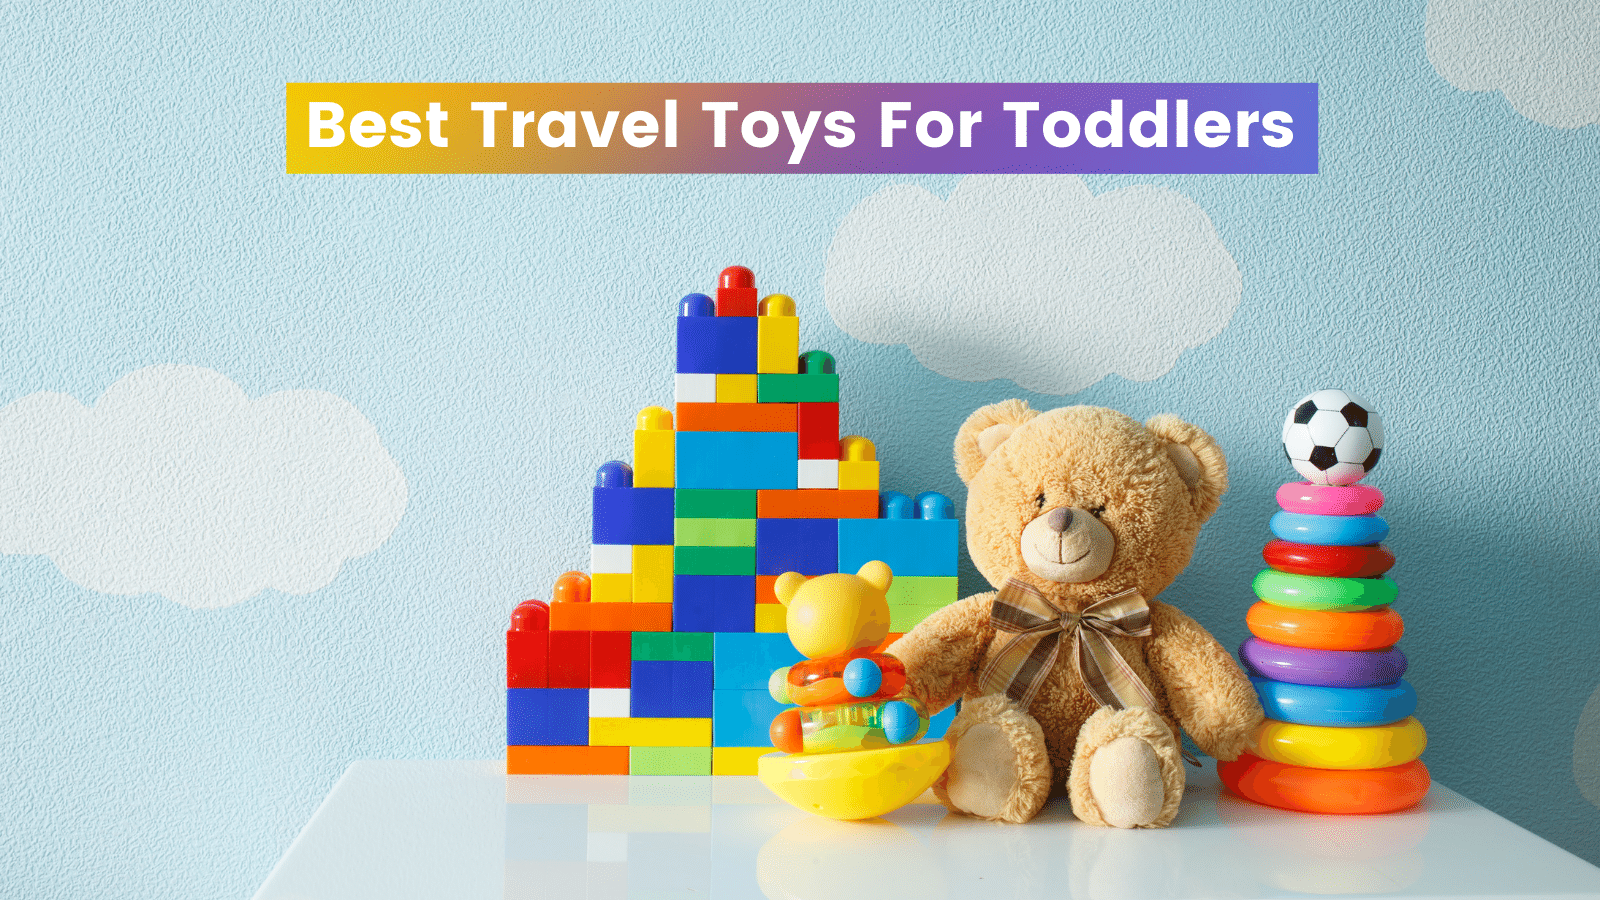 Best Travel Toys For Toddlers